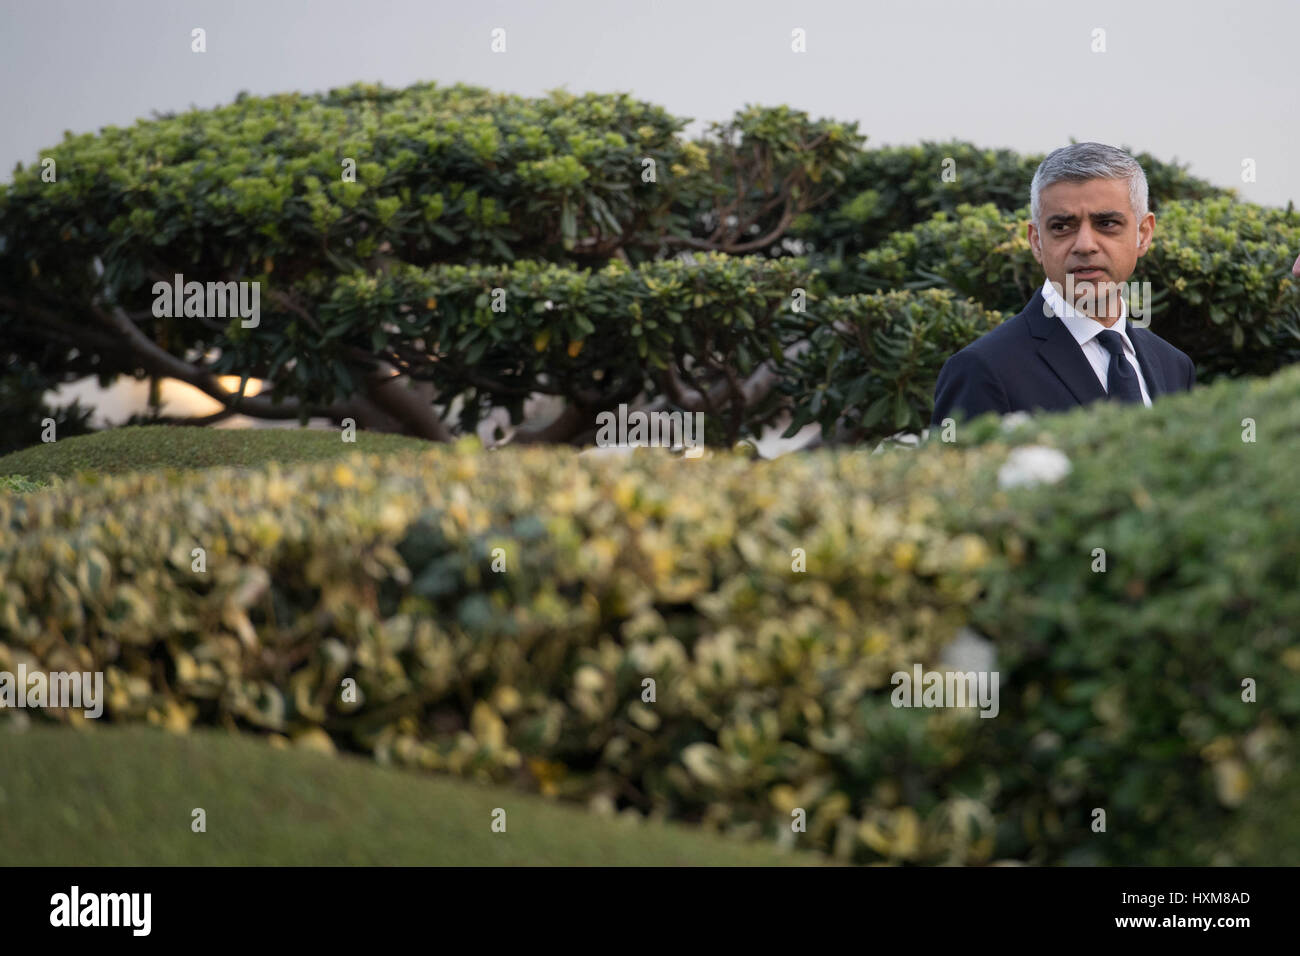 Mayor of London Sadiq Khan at the headquarters of Vivendi in Paris where he took part in TV interviews to discuss Stock Photo